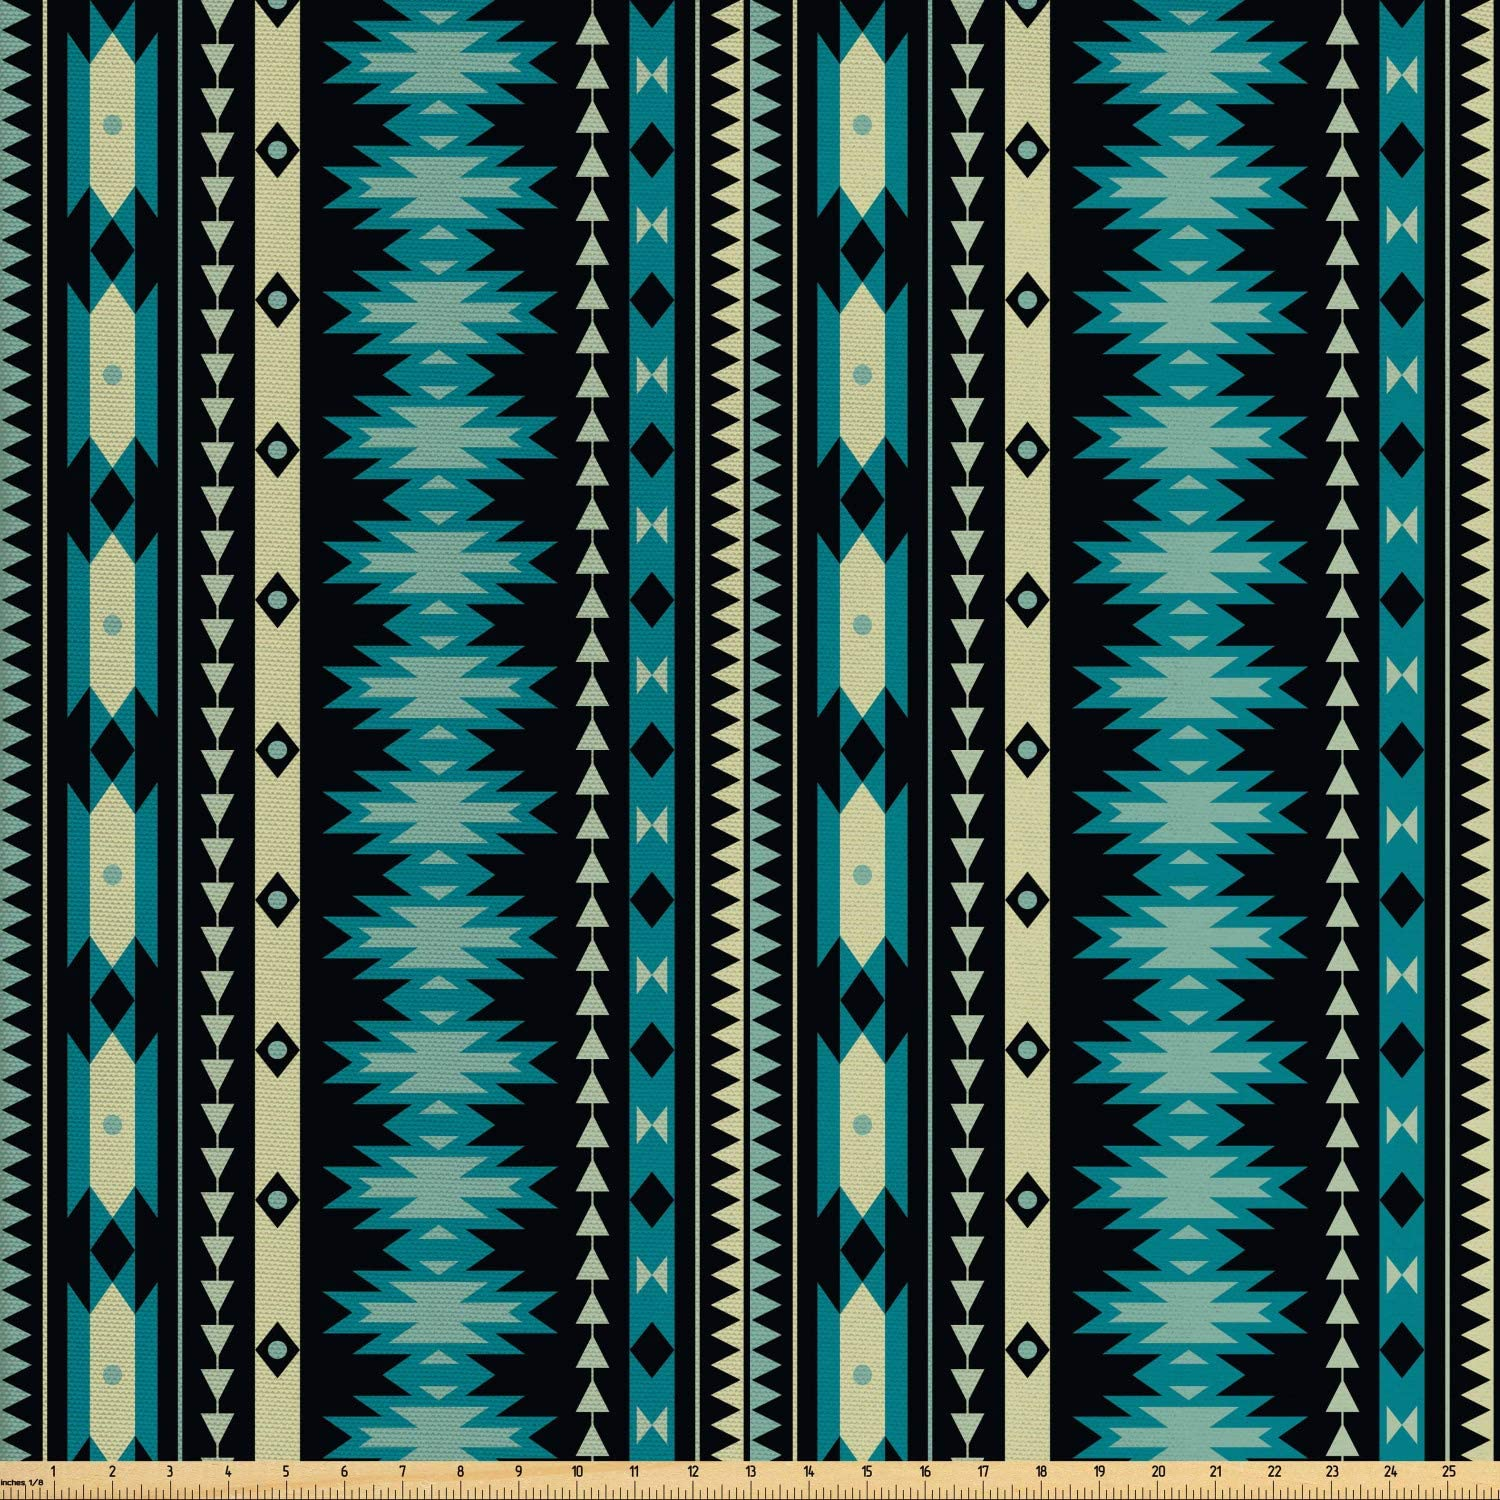 Lunarable Ethnic Fabric by The Yard, Antique Motifs Vertical Ikat Stripes Mayan Cultural Heritage Tradition and Art, Decorative Fabric for Upholstery and Home Accents, 2 Yards, Beige Black